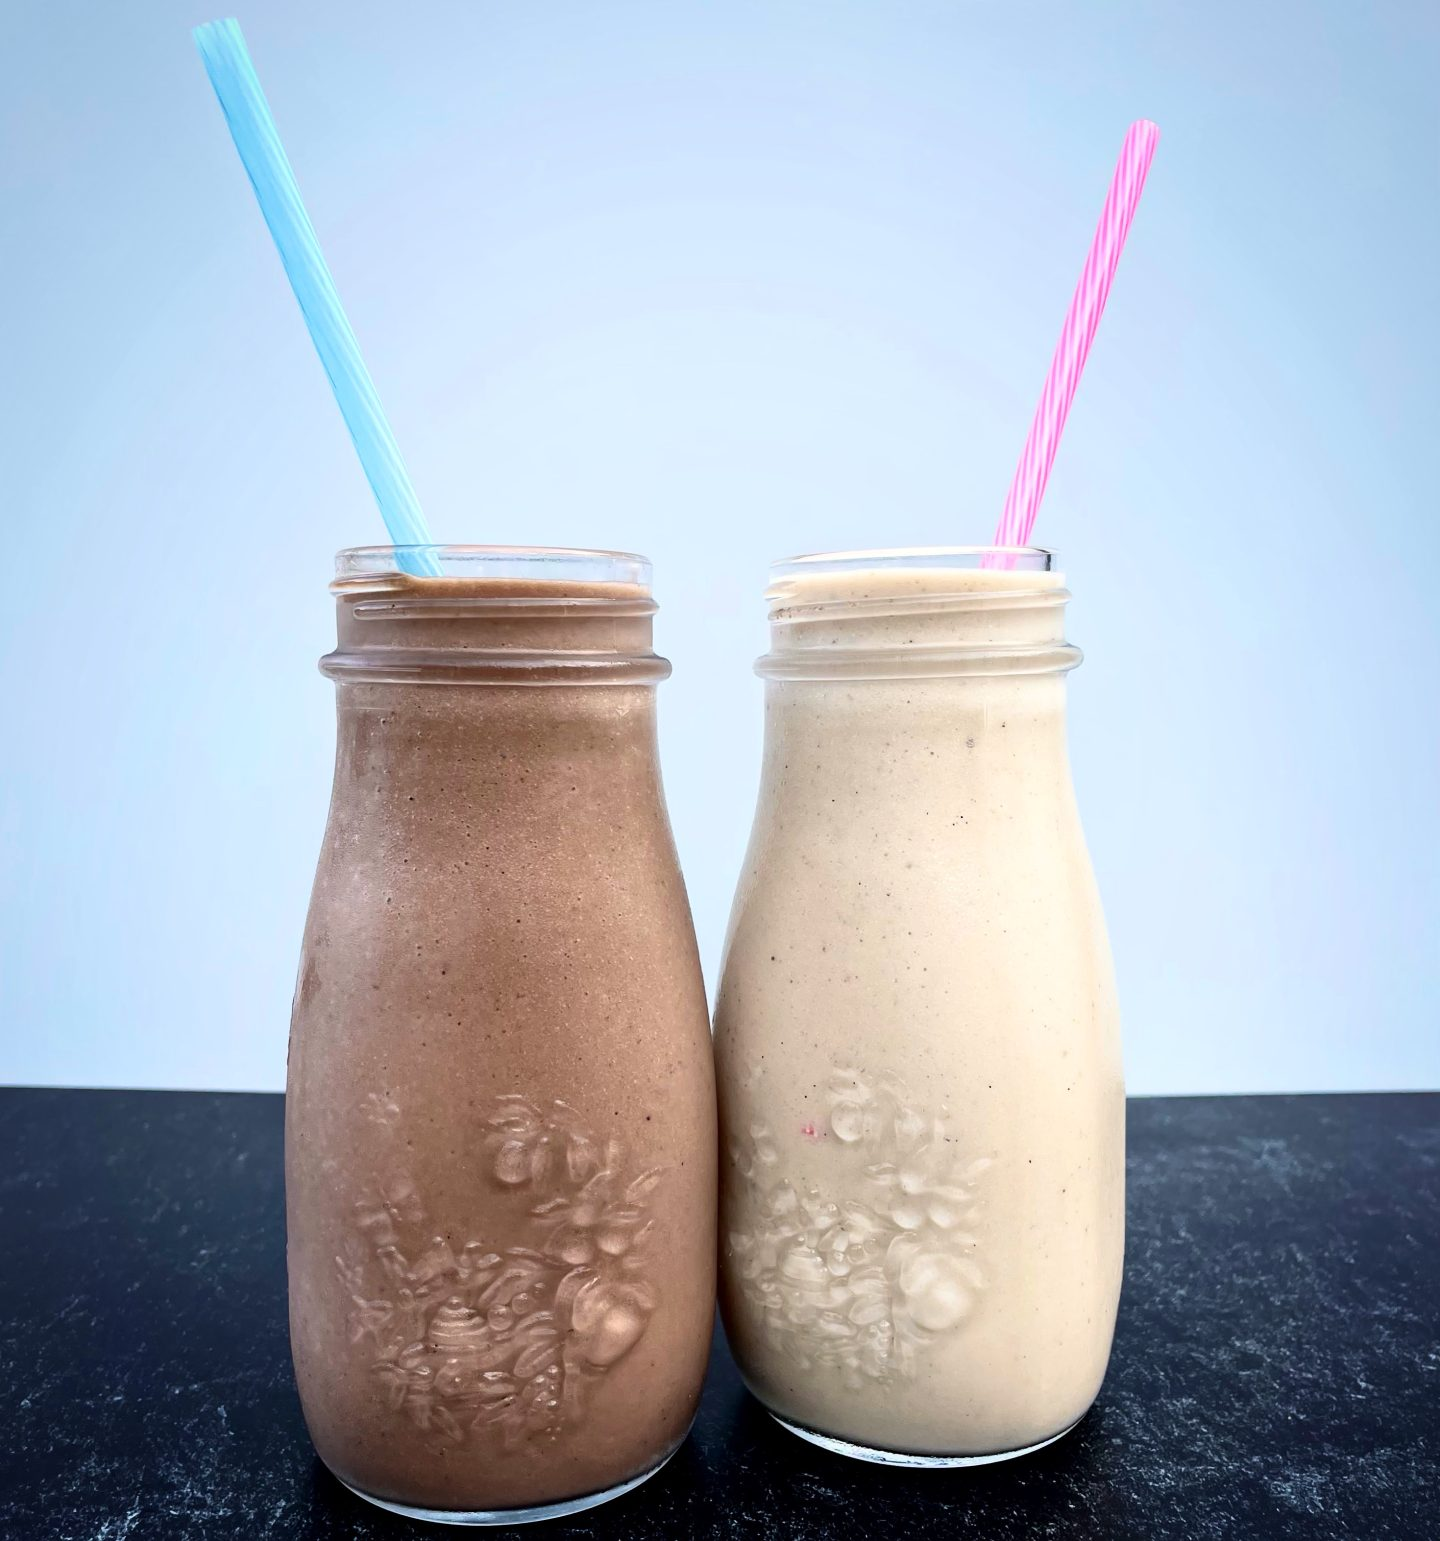 Protected: The Great Smoothie Debate